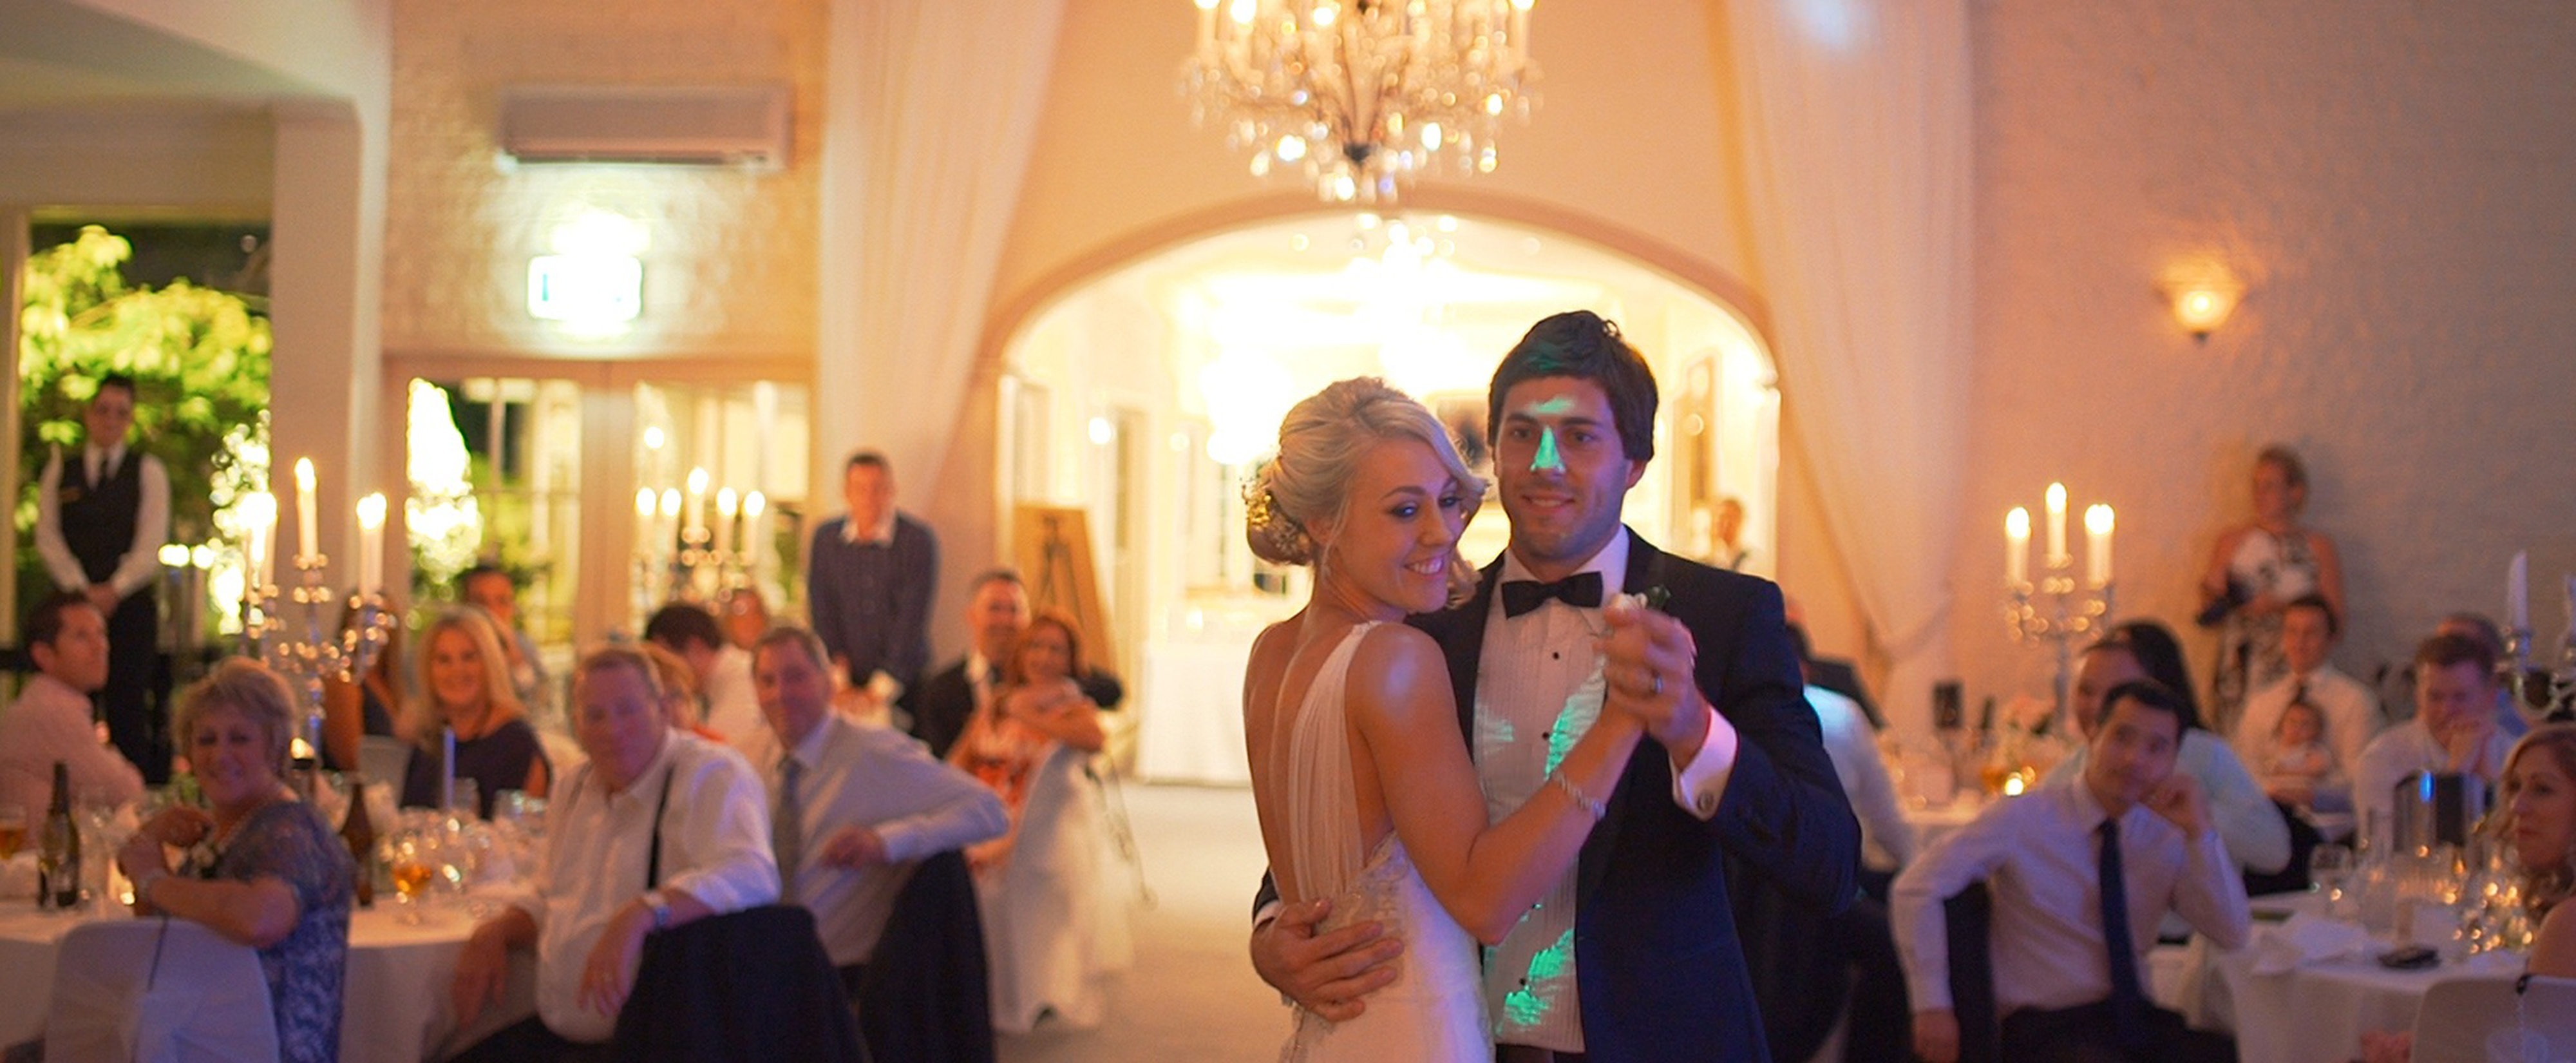 first dance music  and song choices fromDj Intelligence. find the perfect song for wedding or event.